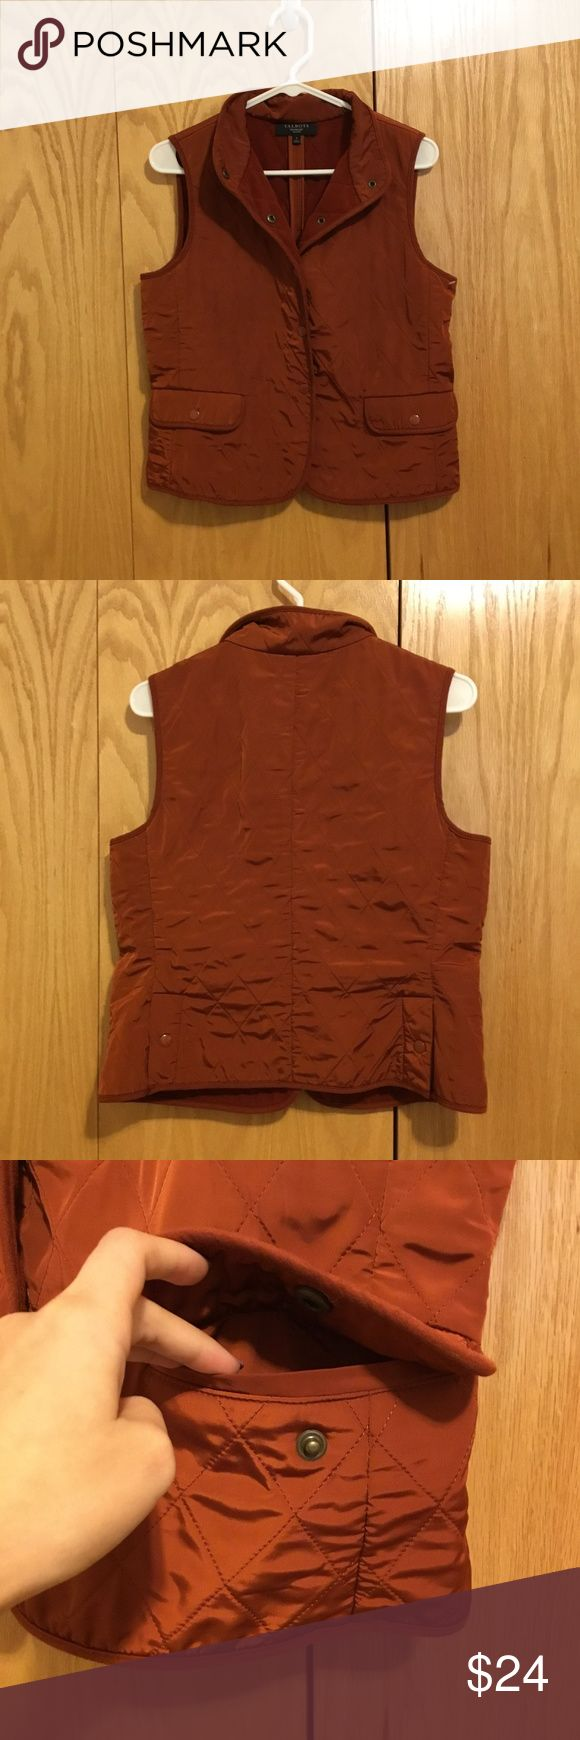 Talbots Quilted Orange Vest 236 Talbots Quilted Orange Vest. Features two functional pockets on the front. Fleece lined inside. Burnt orange. Size small Talbots Jackets & Coats Vests